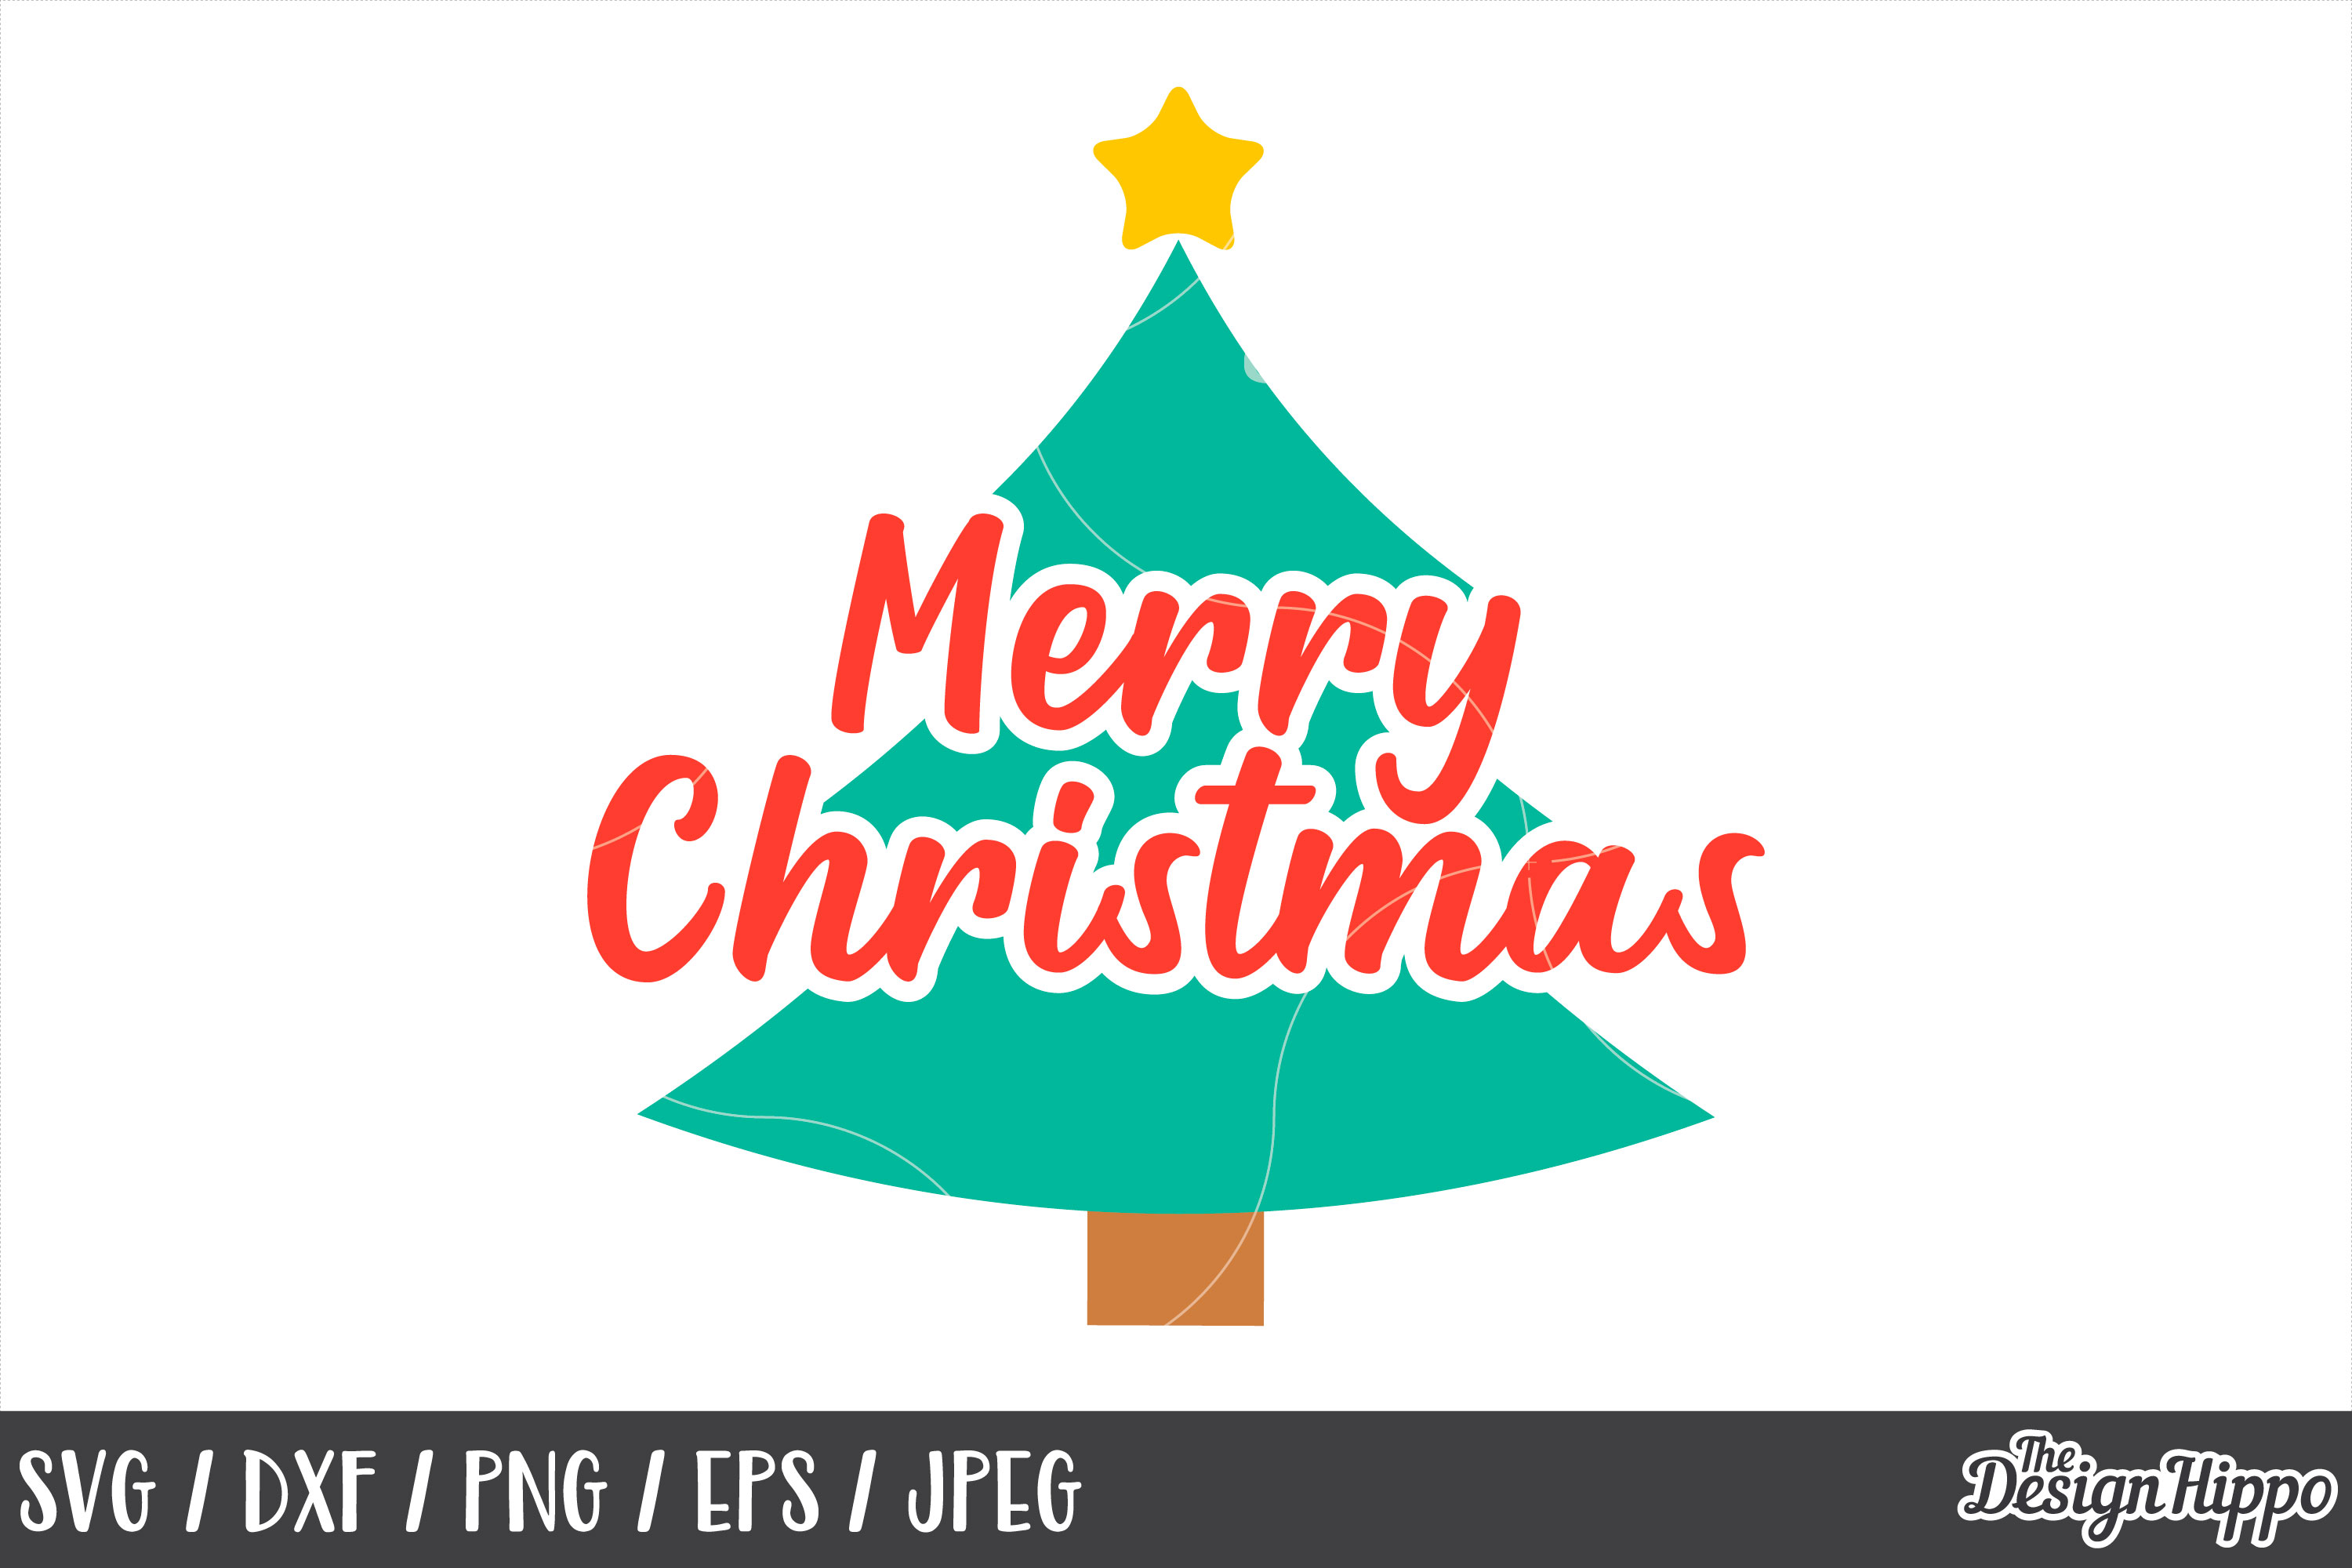 Christmas Tree, Merry Christmas SVG, Star, PNG, DXF Cut File example image 1